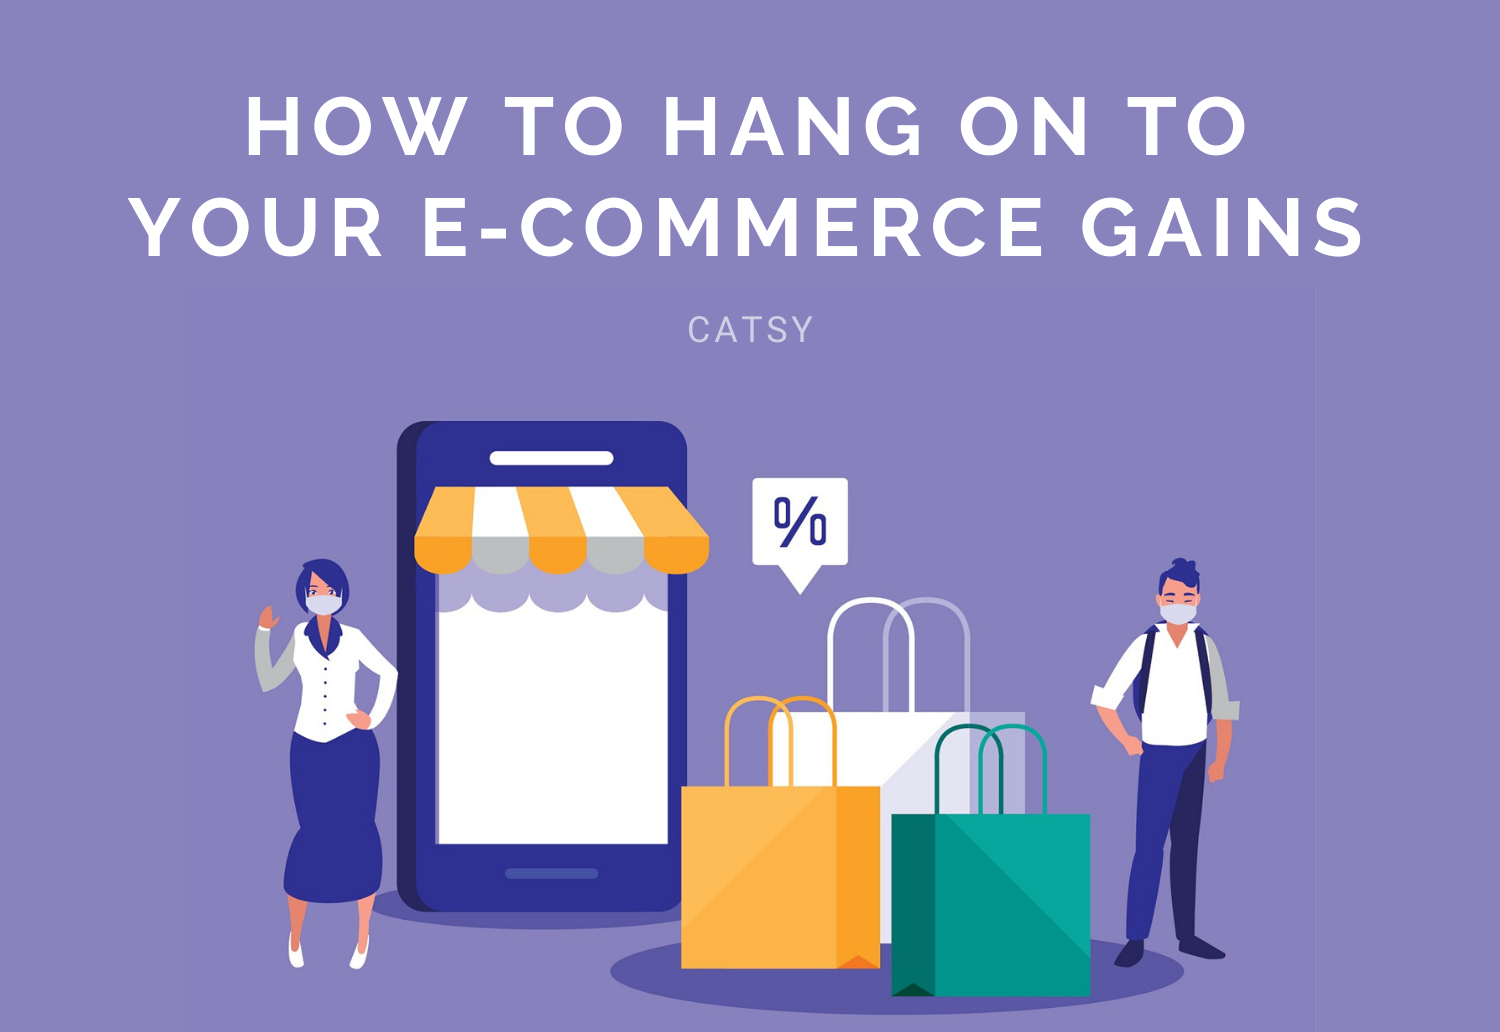 How to Hang on to your eCommerce Gains During COVID-19